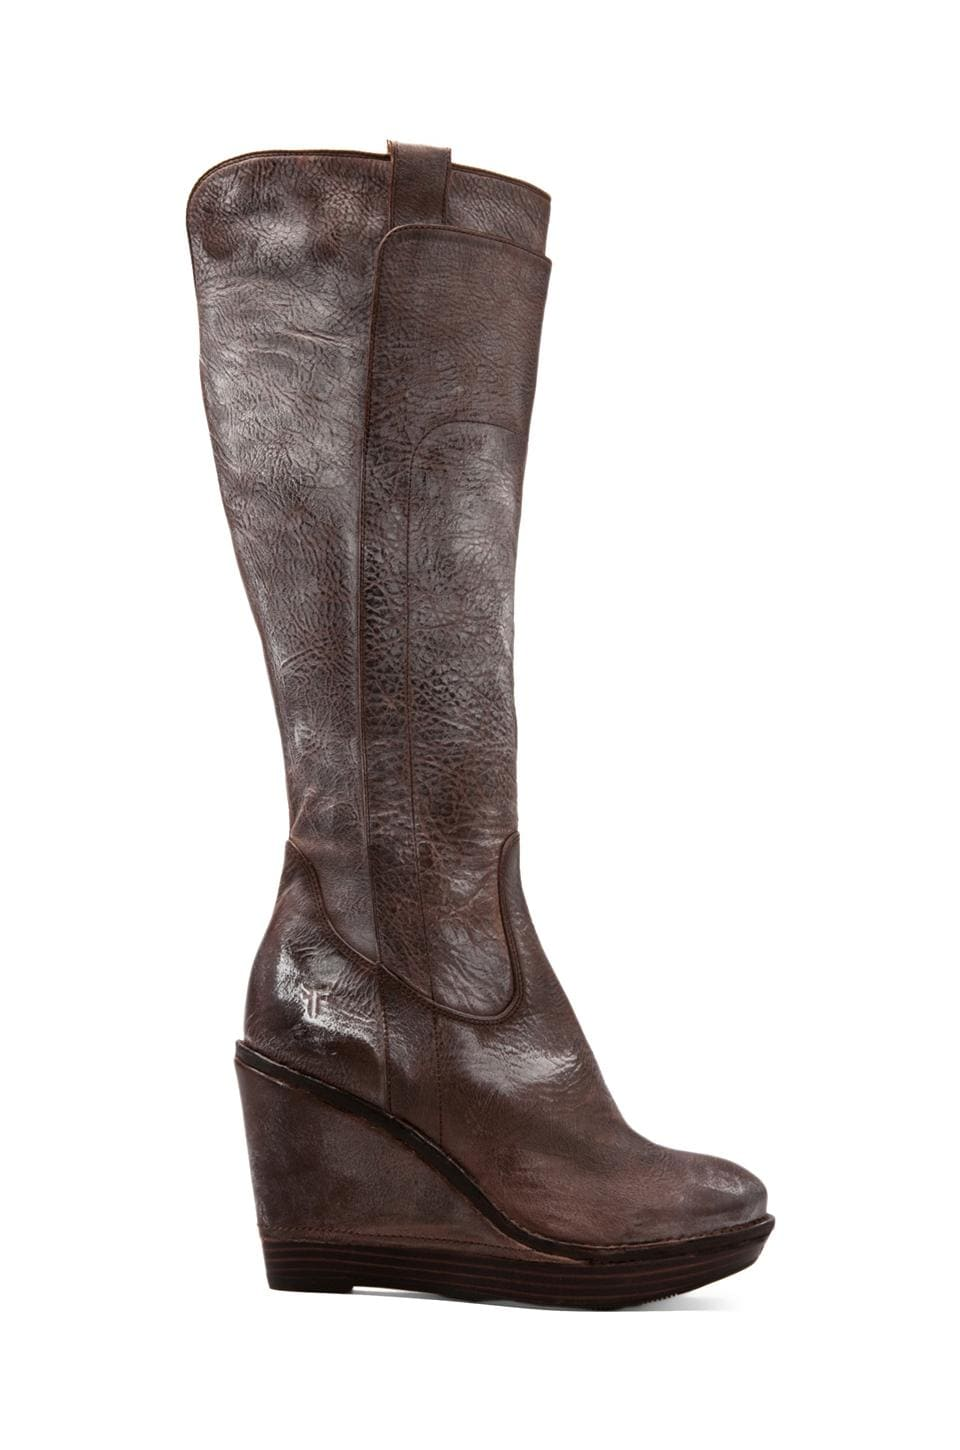 Frye Paige Wedge Boot in Dark Brown